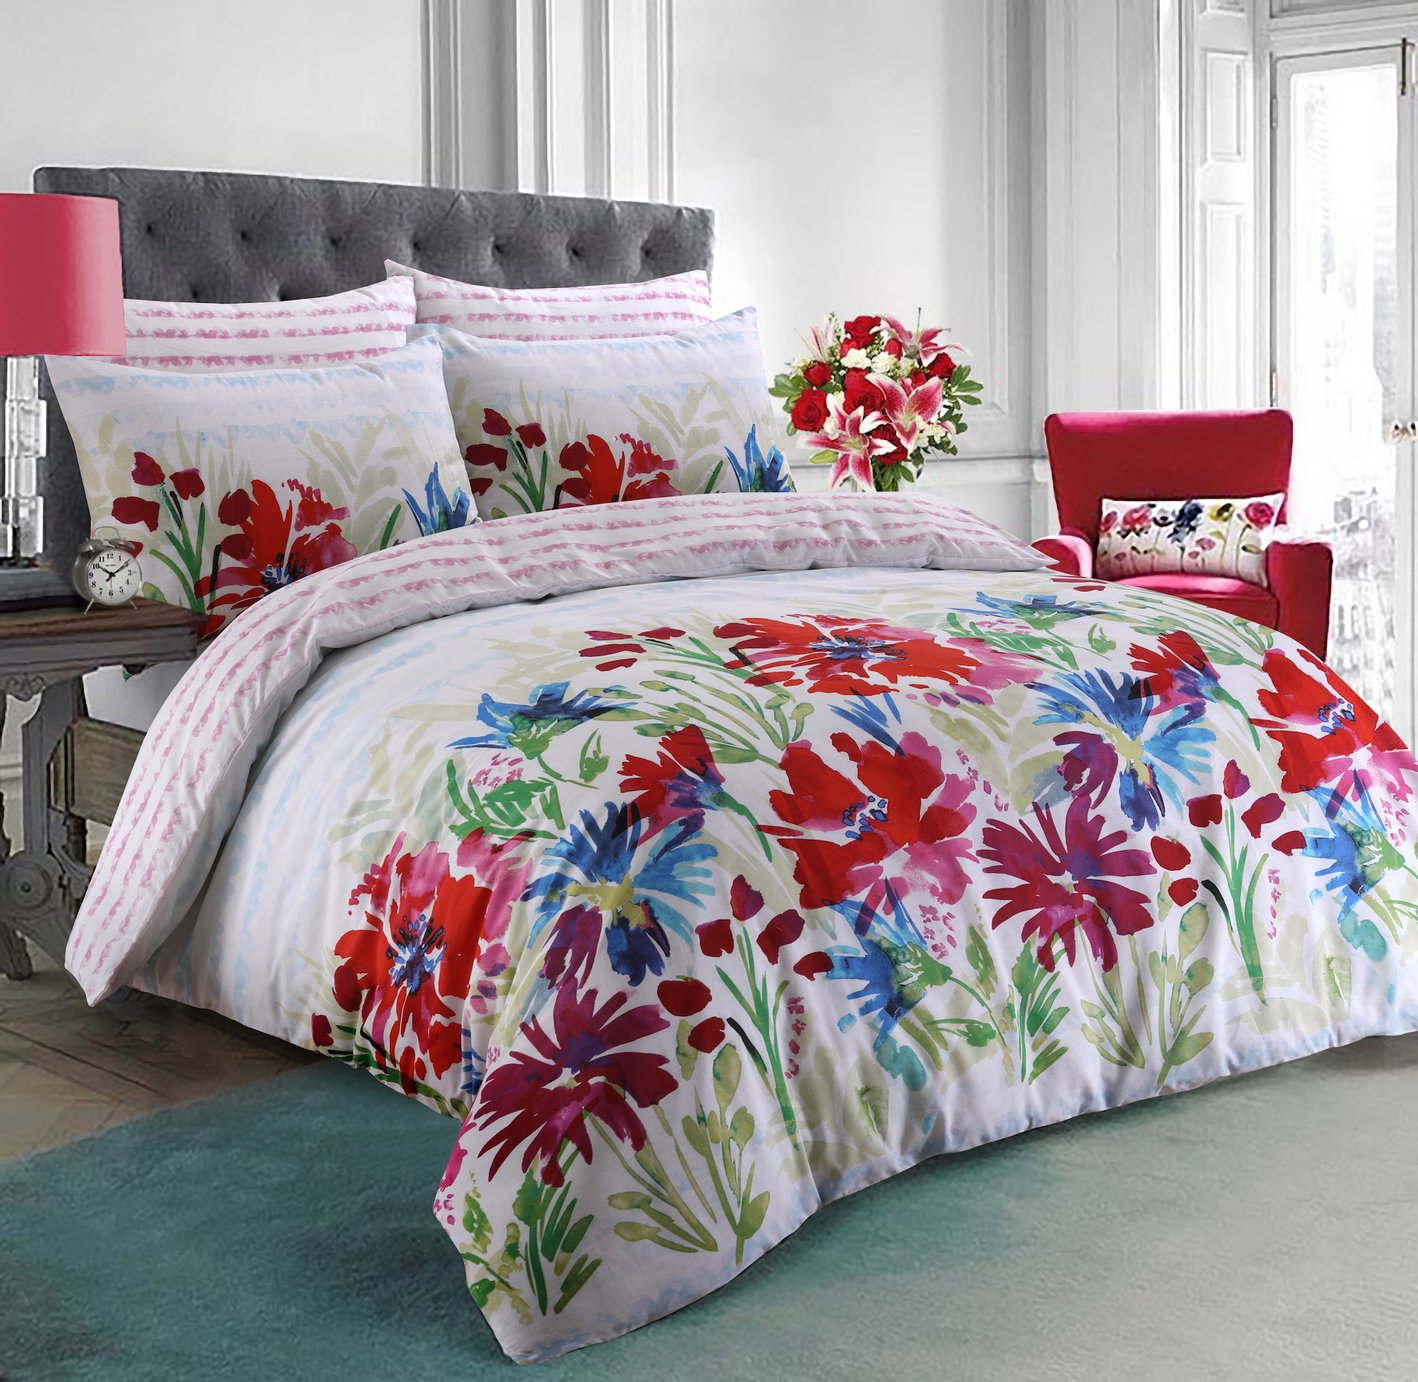 Argos Home Bright Garden Flowers Bedding Set - Double